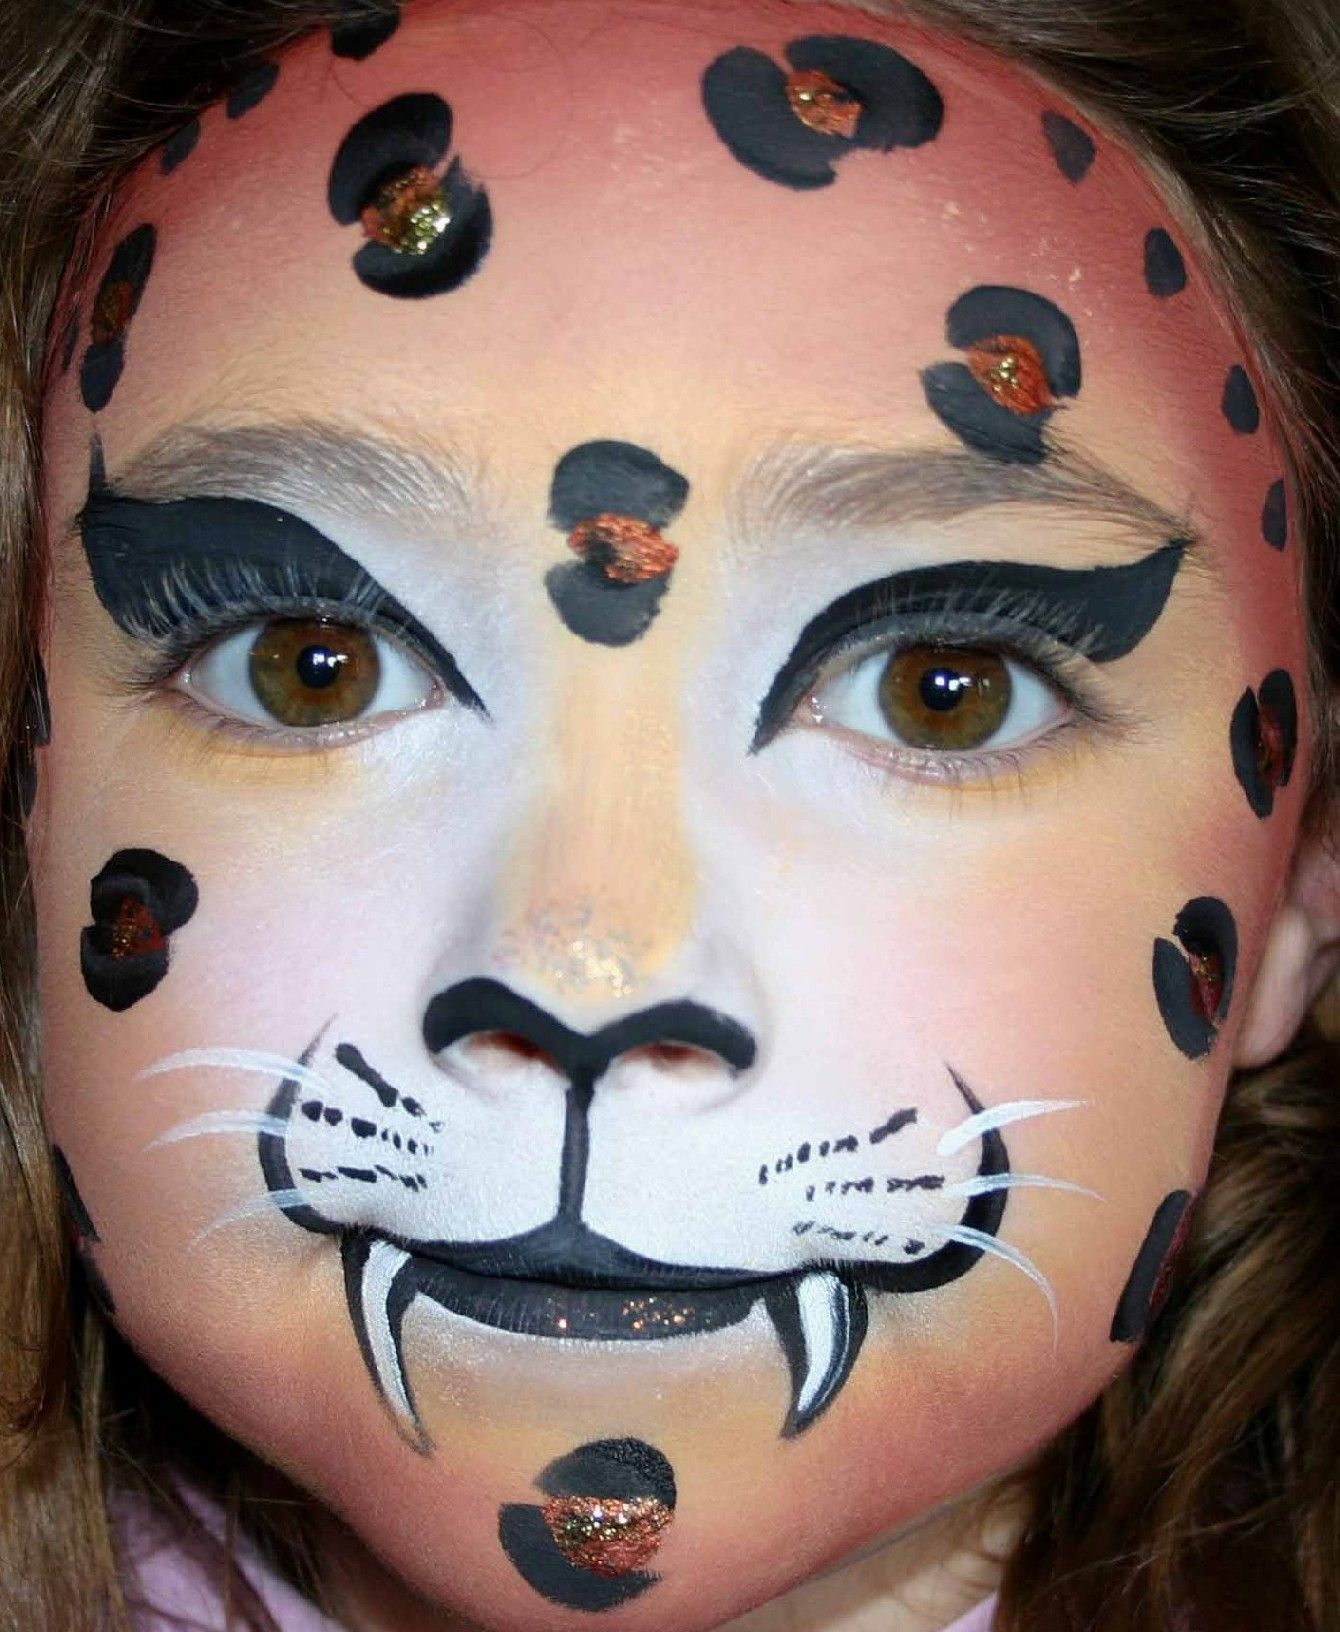 Face Paint Supplies Adelaide Leopard Face Paint Leopard Face Painted By Professional Face